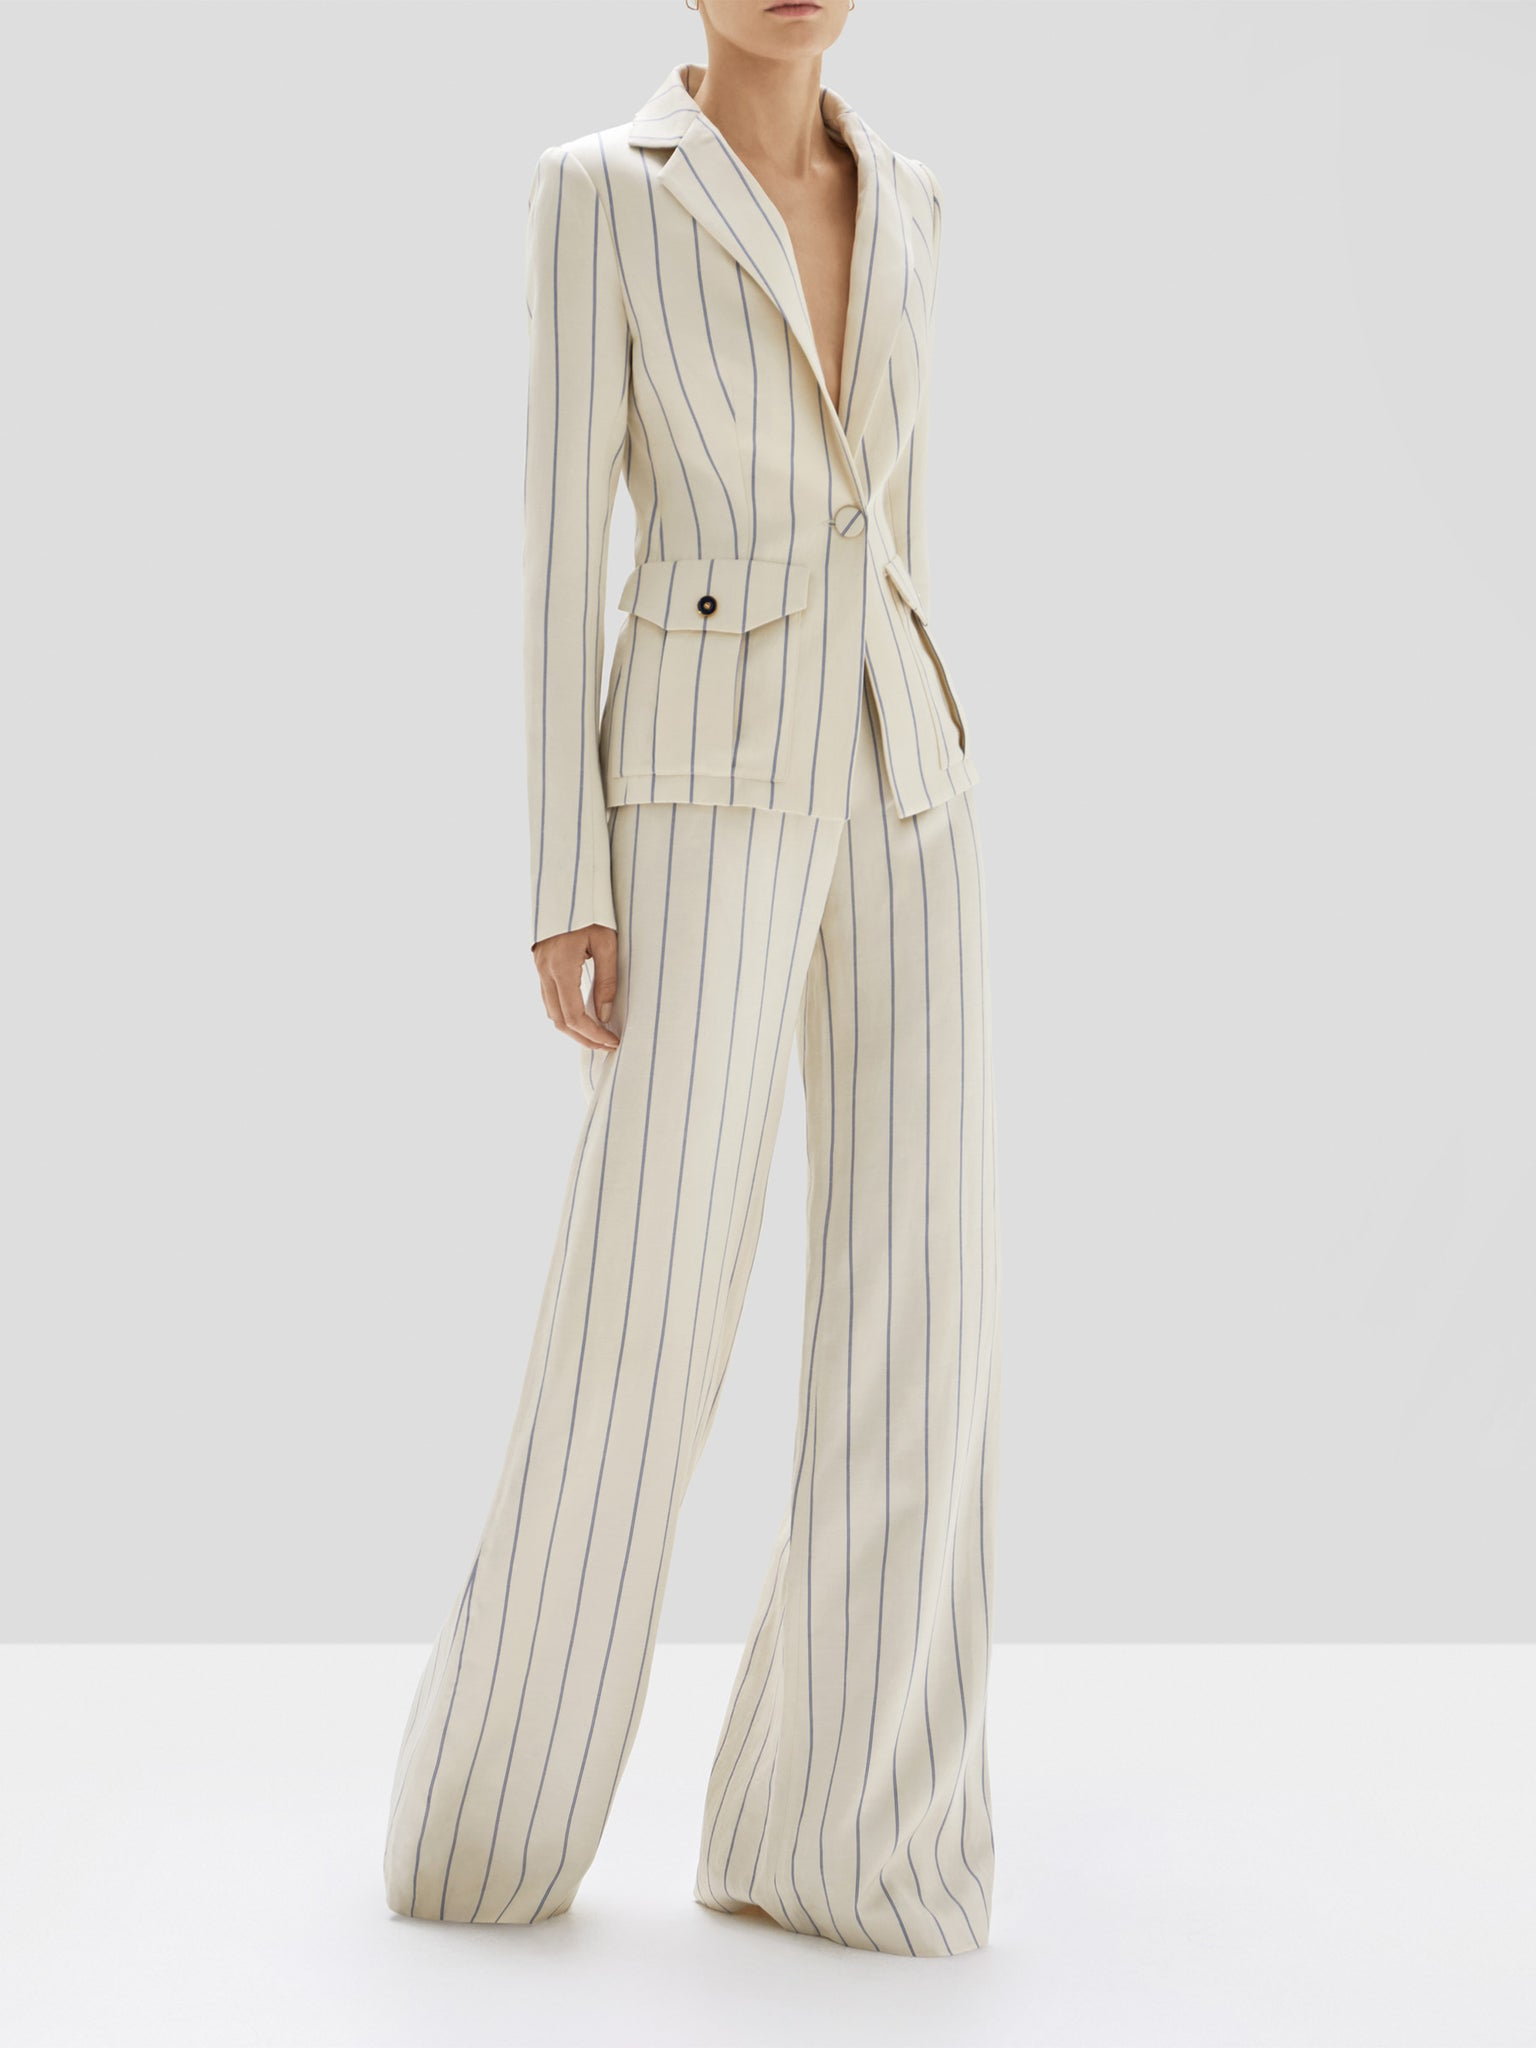 Alexis Enos Jacket and Dixon Pant in Blue Stripes from Pre Spring 2020 Collection